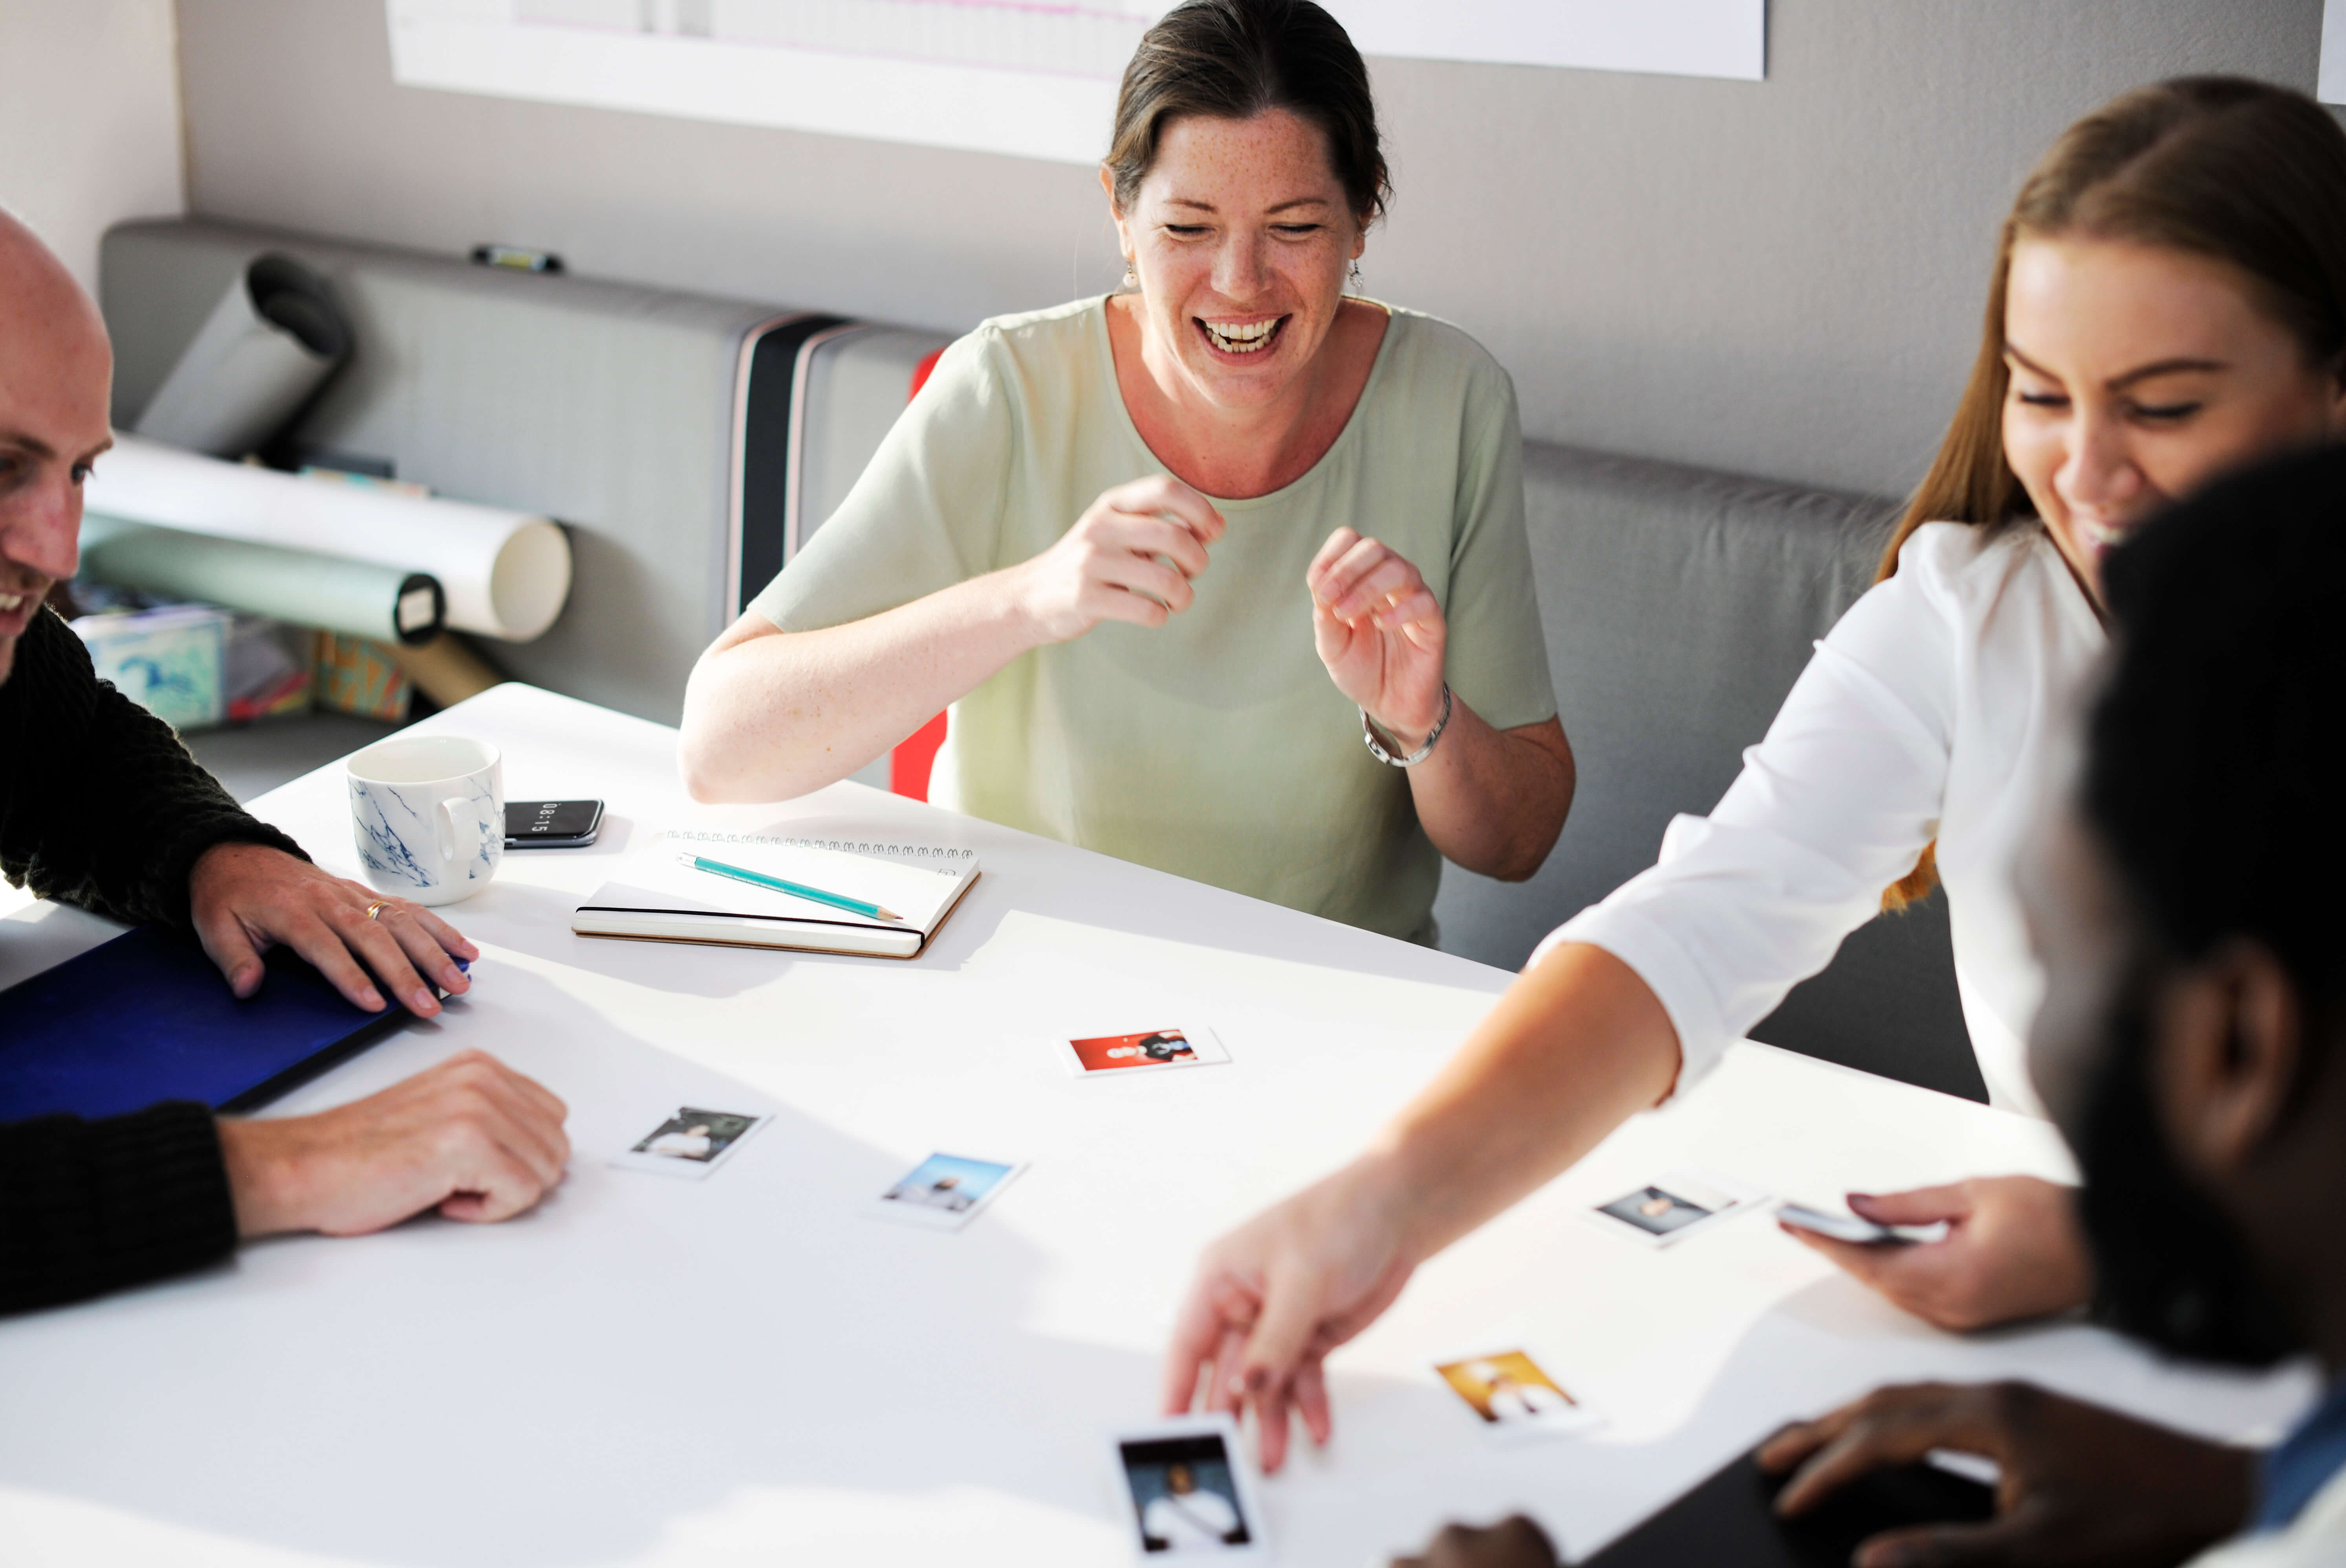 Meeting with cards